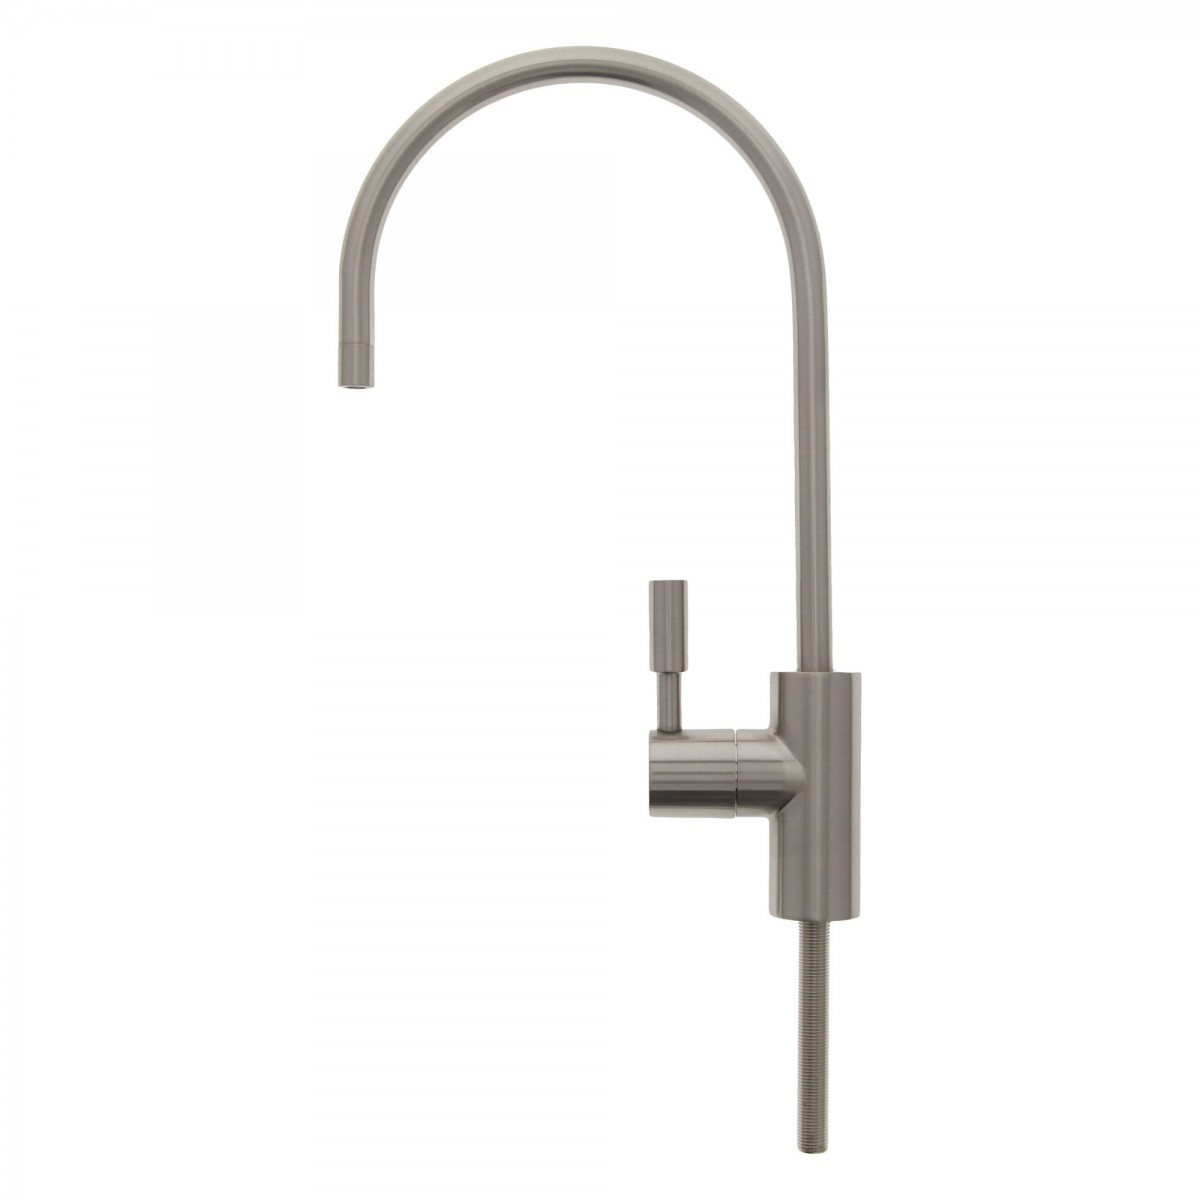 Tier1 Lf Ec25 Bn Contemporary Ceramic Faucet Brushed Nickel